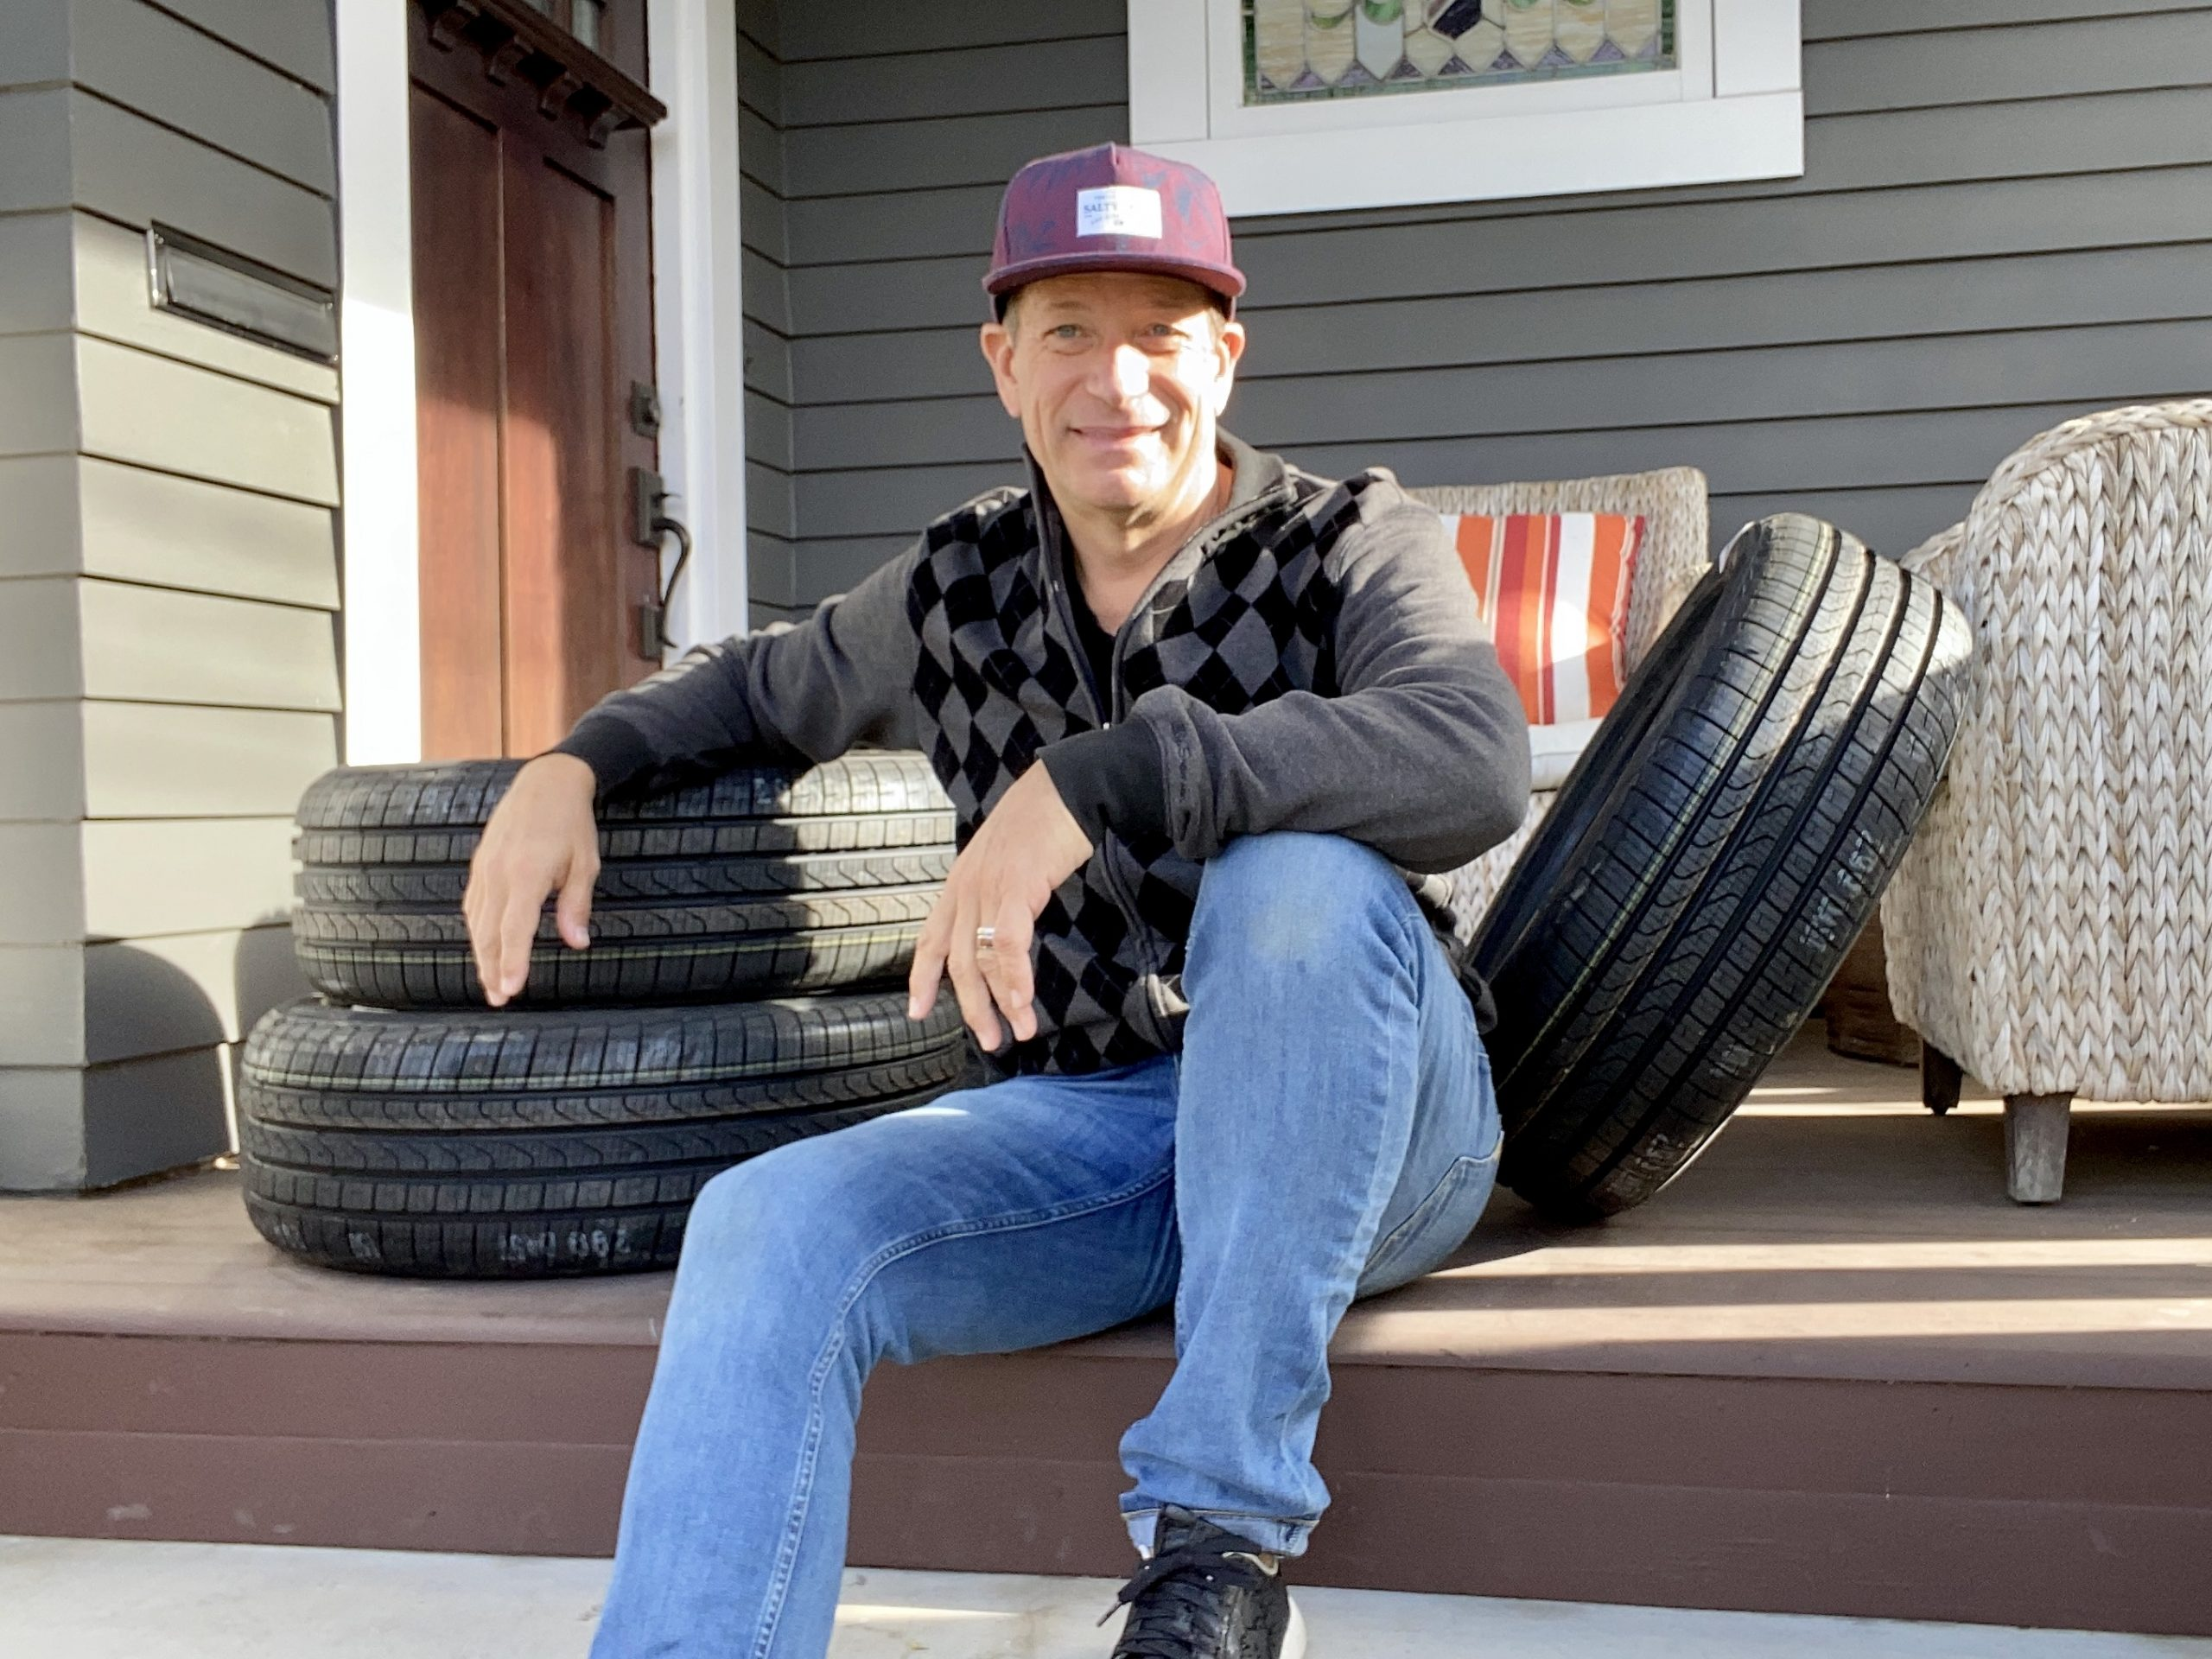 SimpleTire Makes Process Easy by Delivering Tires to Your Door